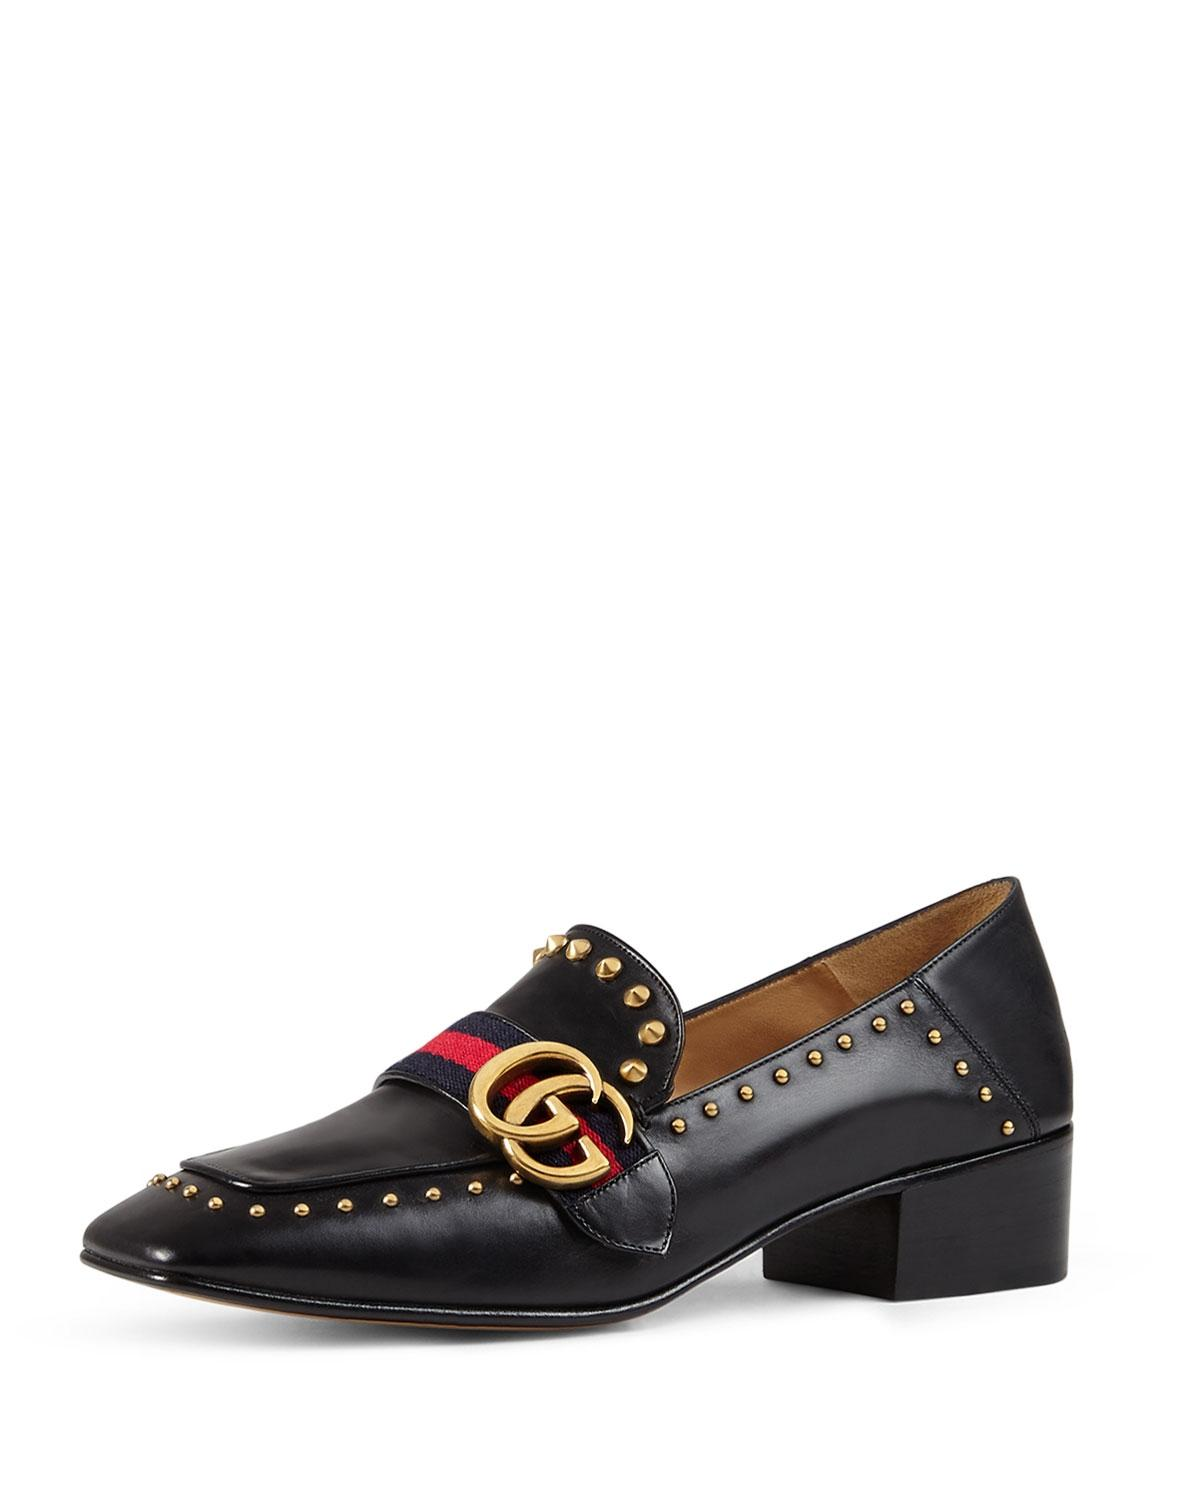 Gucci Women's Peyton Loafer Mule